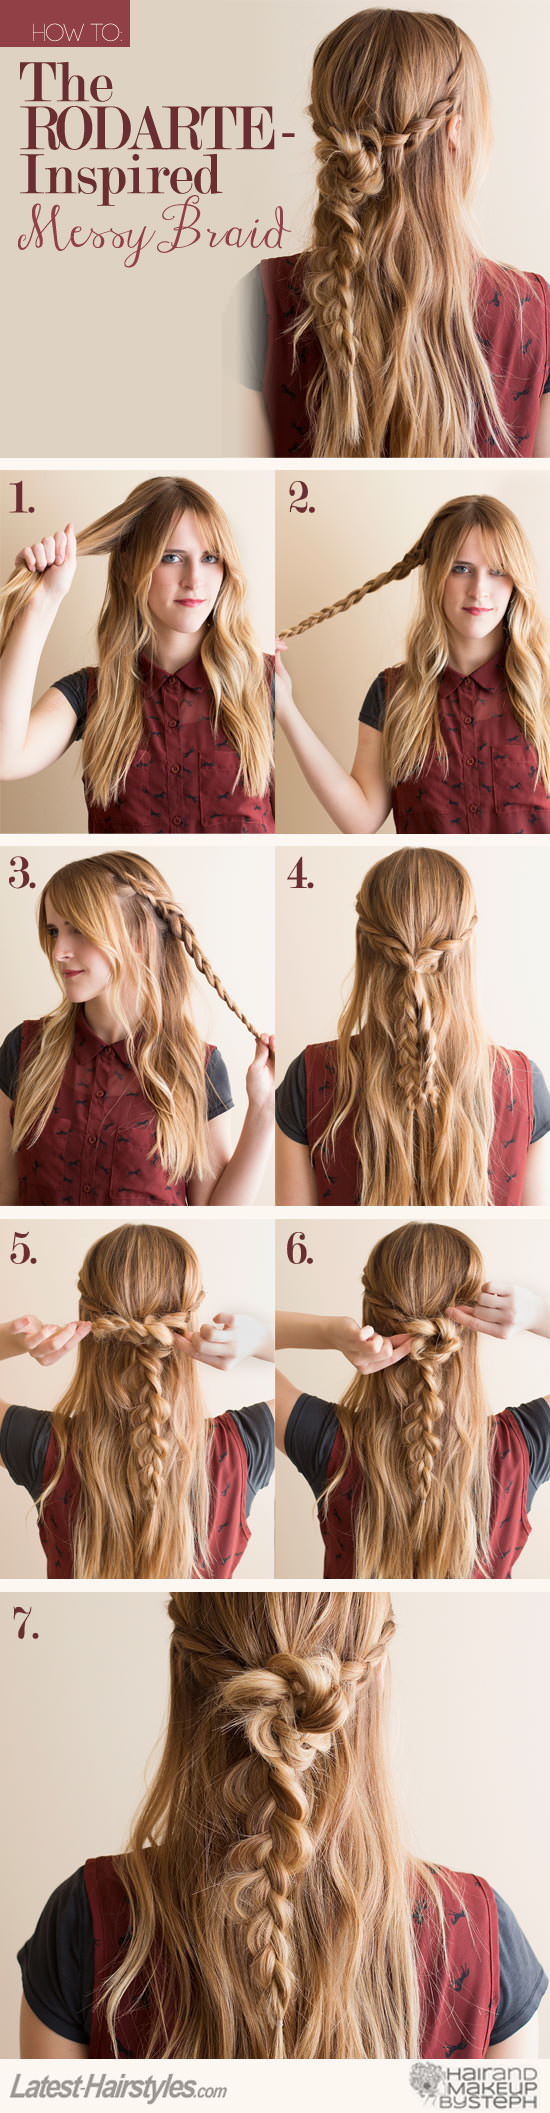 Latest Hair Do : Messy Braid How To: The Rodarte-Inspired Messy Braid